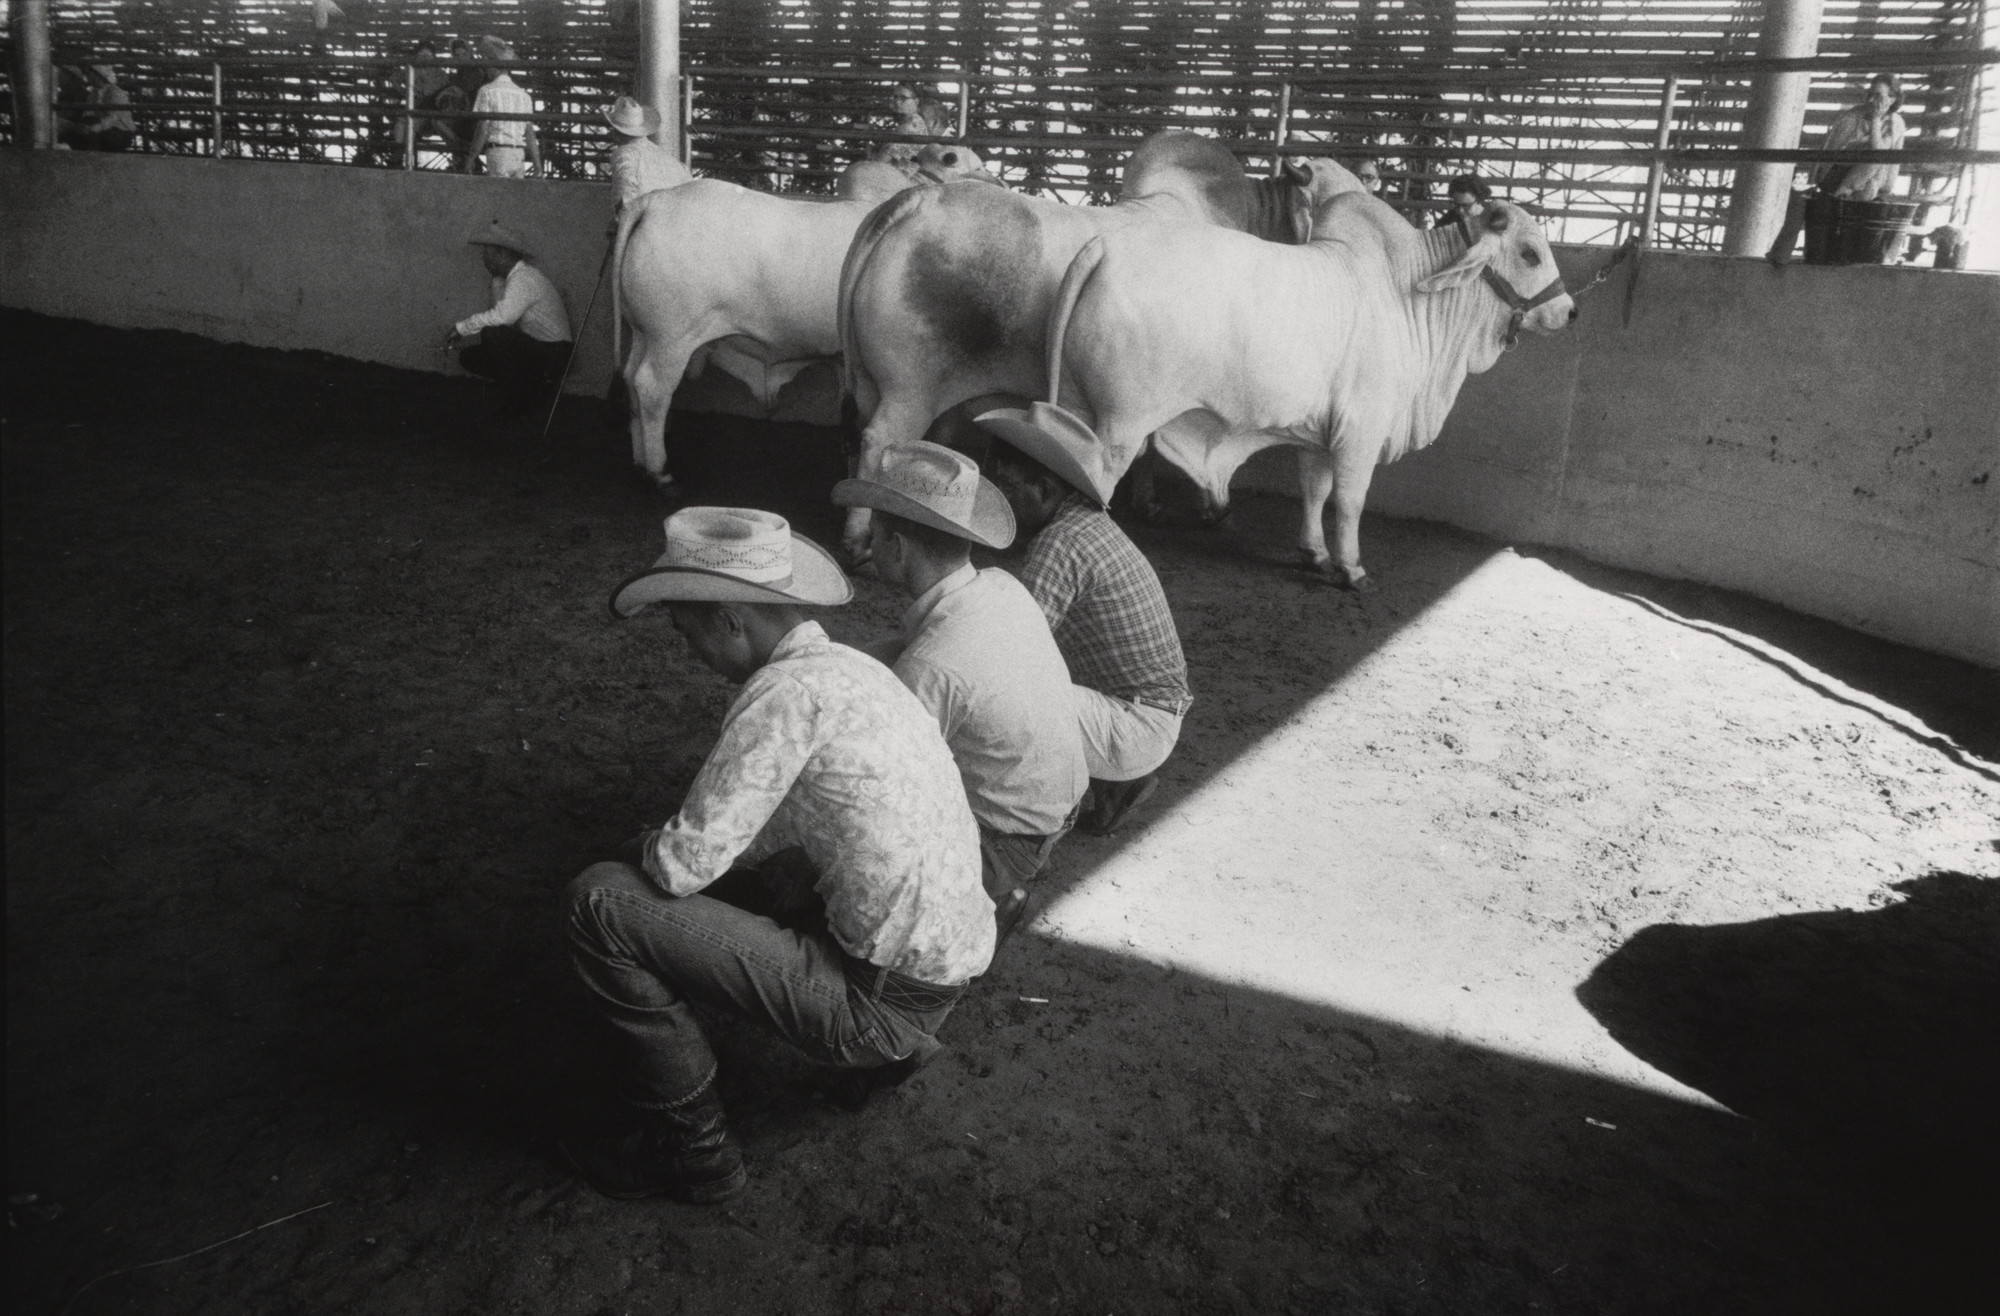 Garry Winogrand. State Fair of Texas, Dallas. 1964